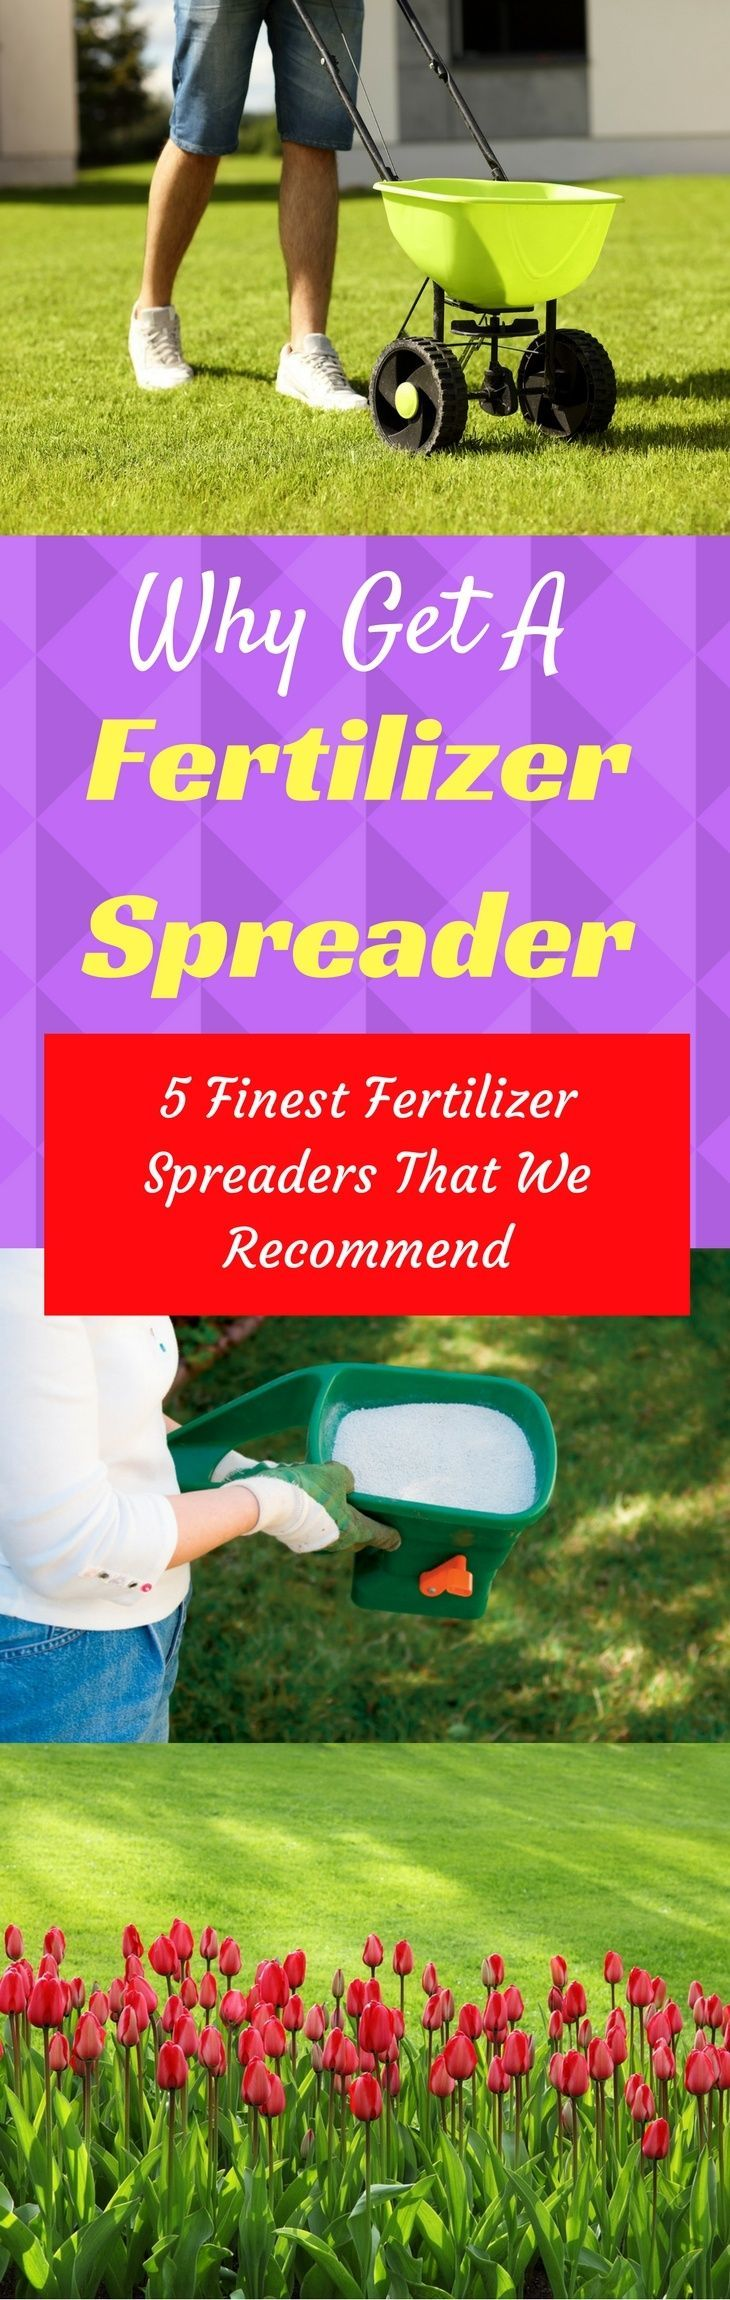 Proper fertilization is essential for the perfect garden. Learn what a fertilizer spreaders is, its different types, and which one you should get for your lawn. Source: https://gardenambition.com/best-fertilizer-spreader/ - St. Joseph Mo Lawn Care